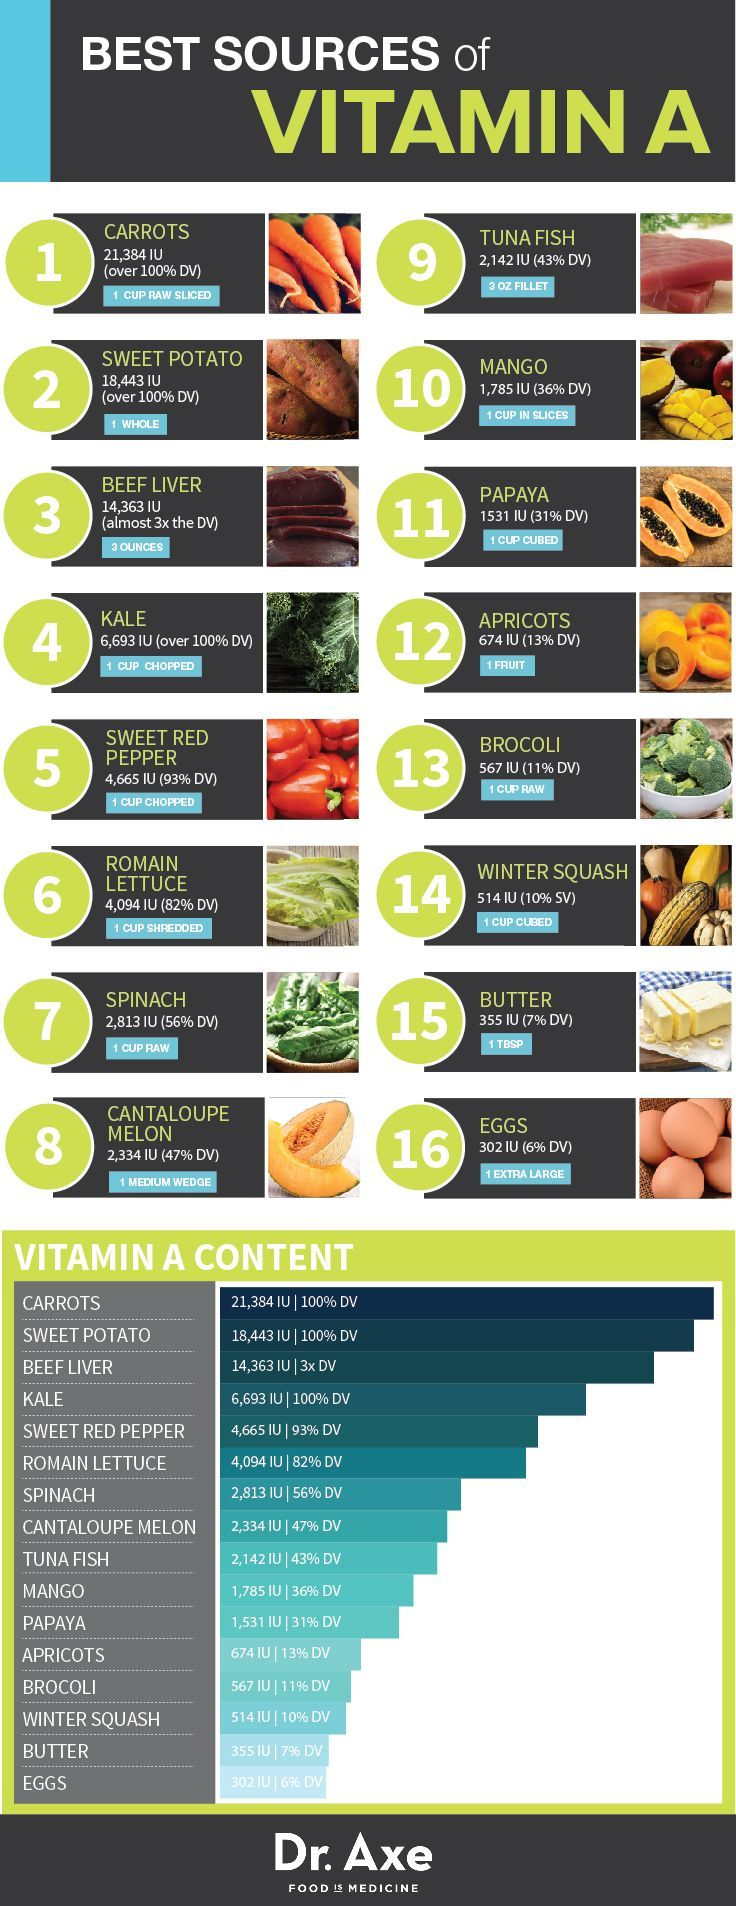 Vitamin A: Benefits, Sources & Side Effects. Vitamin A is a fat soluble vitamin that is also a powerful antioxidant. Vitamin A plays a critical role in maintaining healthy vision, neurological function, healthy skin, and more. Vitamin A- like all antioxidants- is involved in reducing inflammation through fighting free radical damage. Consuming a diet high in antioxidants is a way to naturally slow aging.